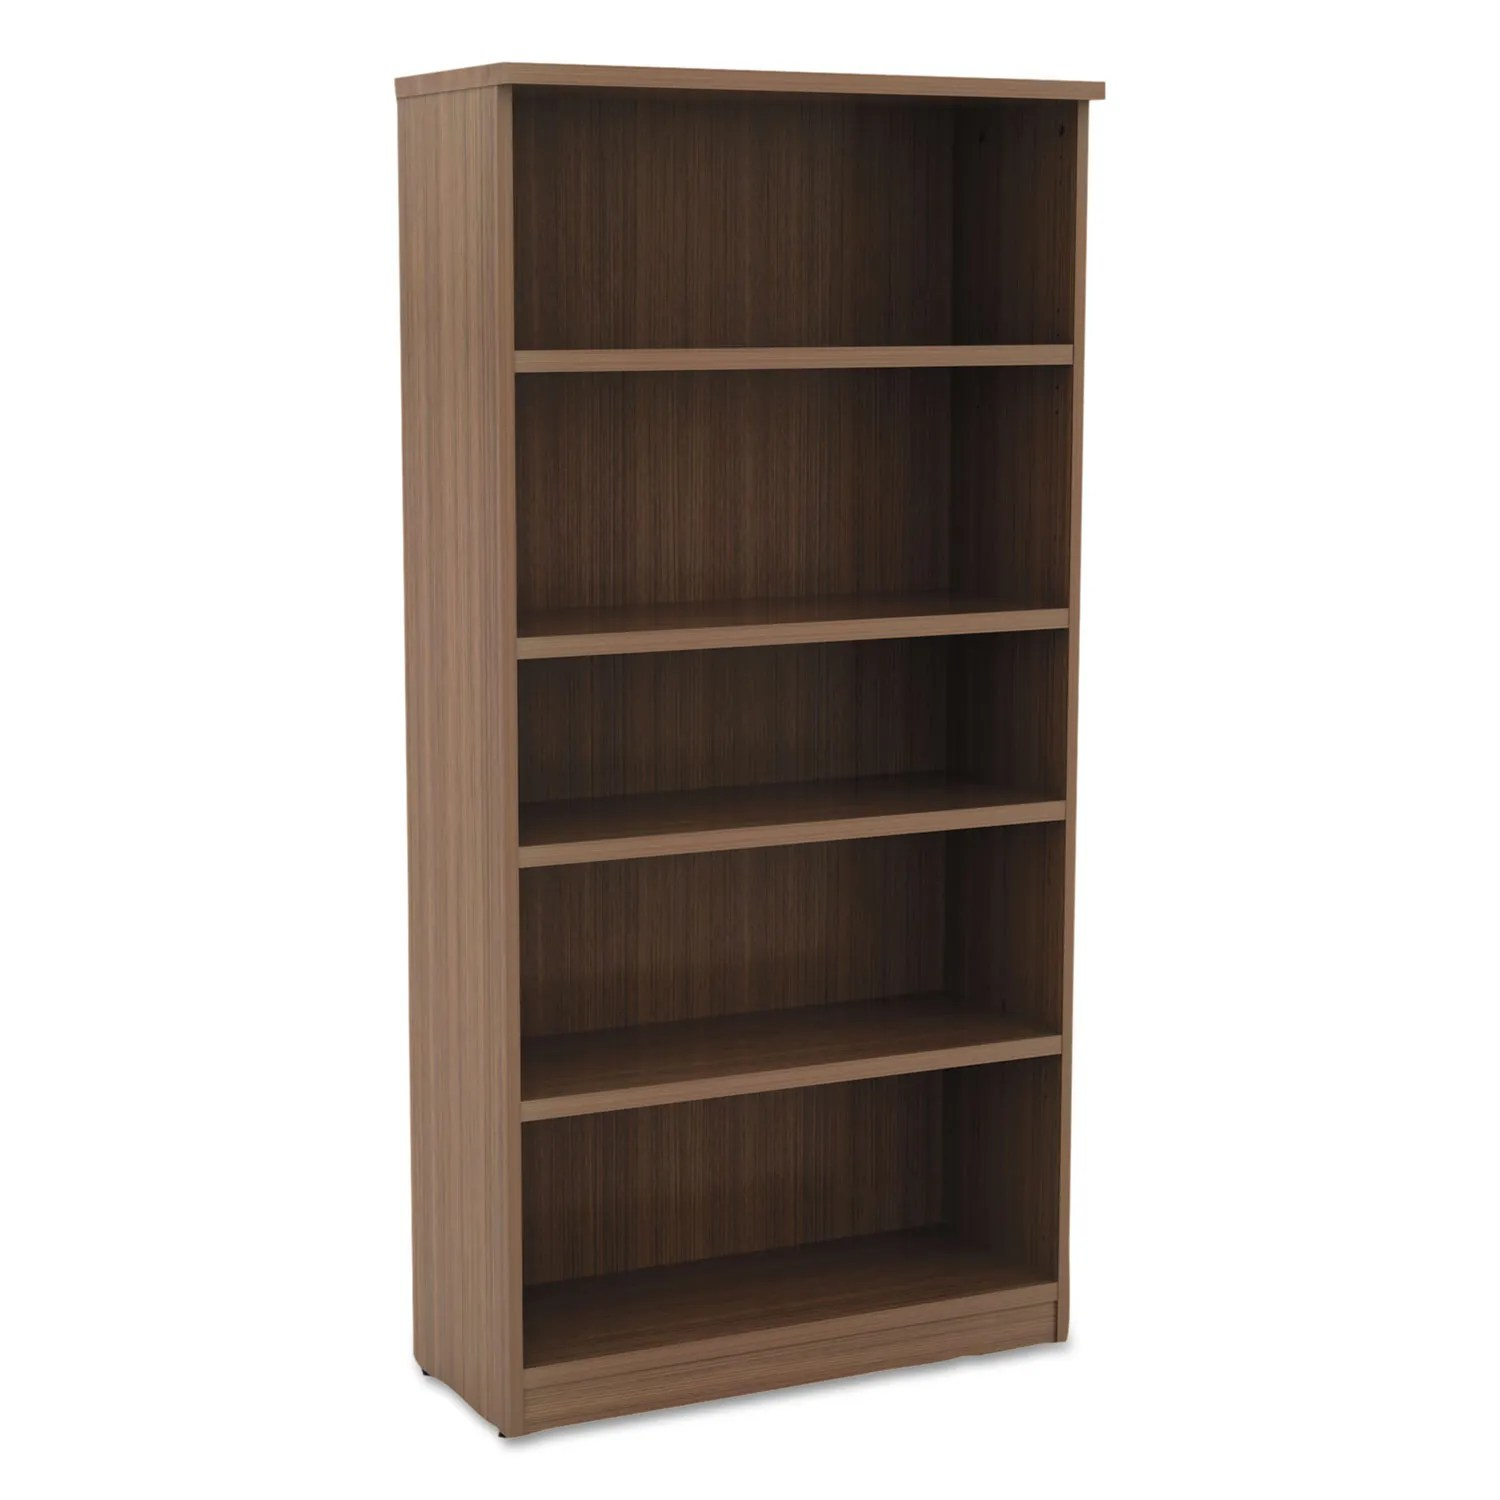 Alera Valencia Series Bookcase Five Shelf 31 3 4w X 14d X 65h Modern Walnut